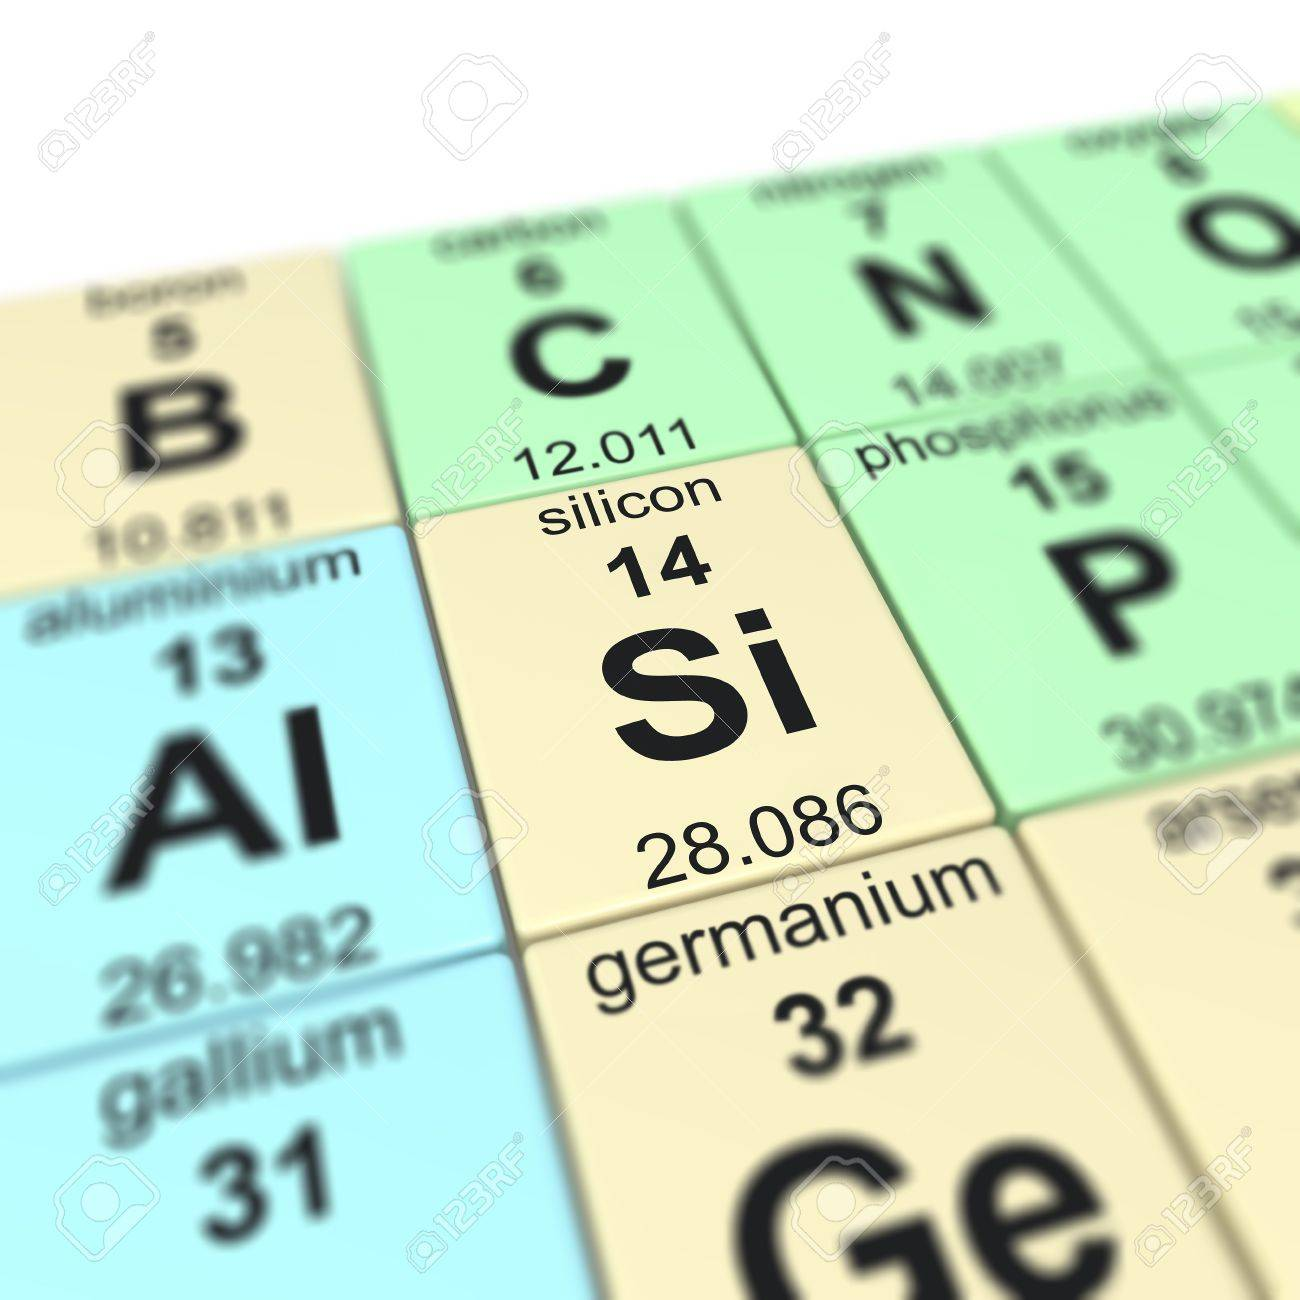 Periodic table of elements focused on silicon stock photo periodic table of elements focused on silicon stock photo 20109190 biocorpaavc Gallery